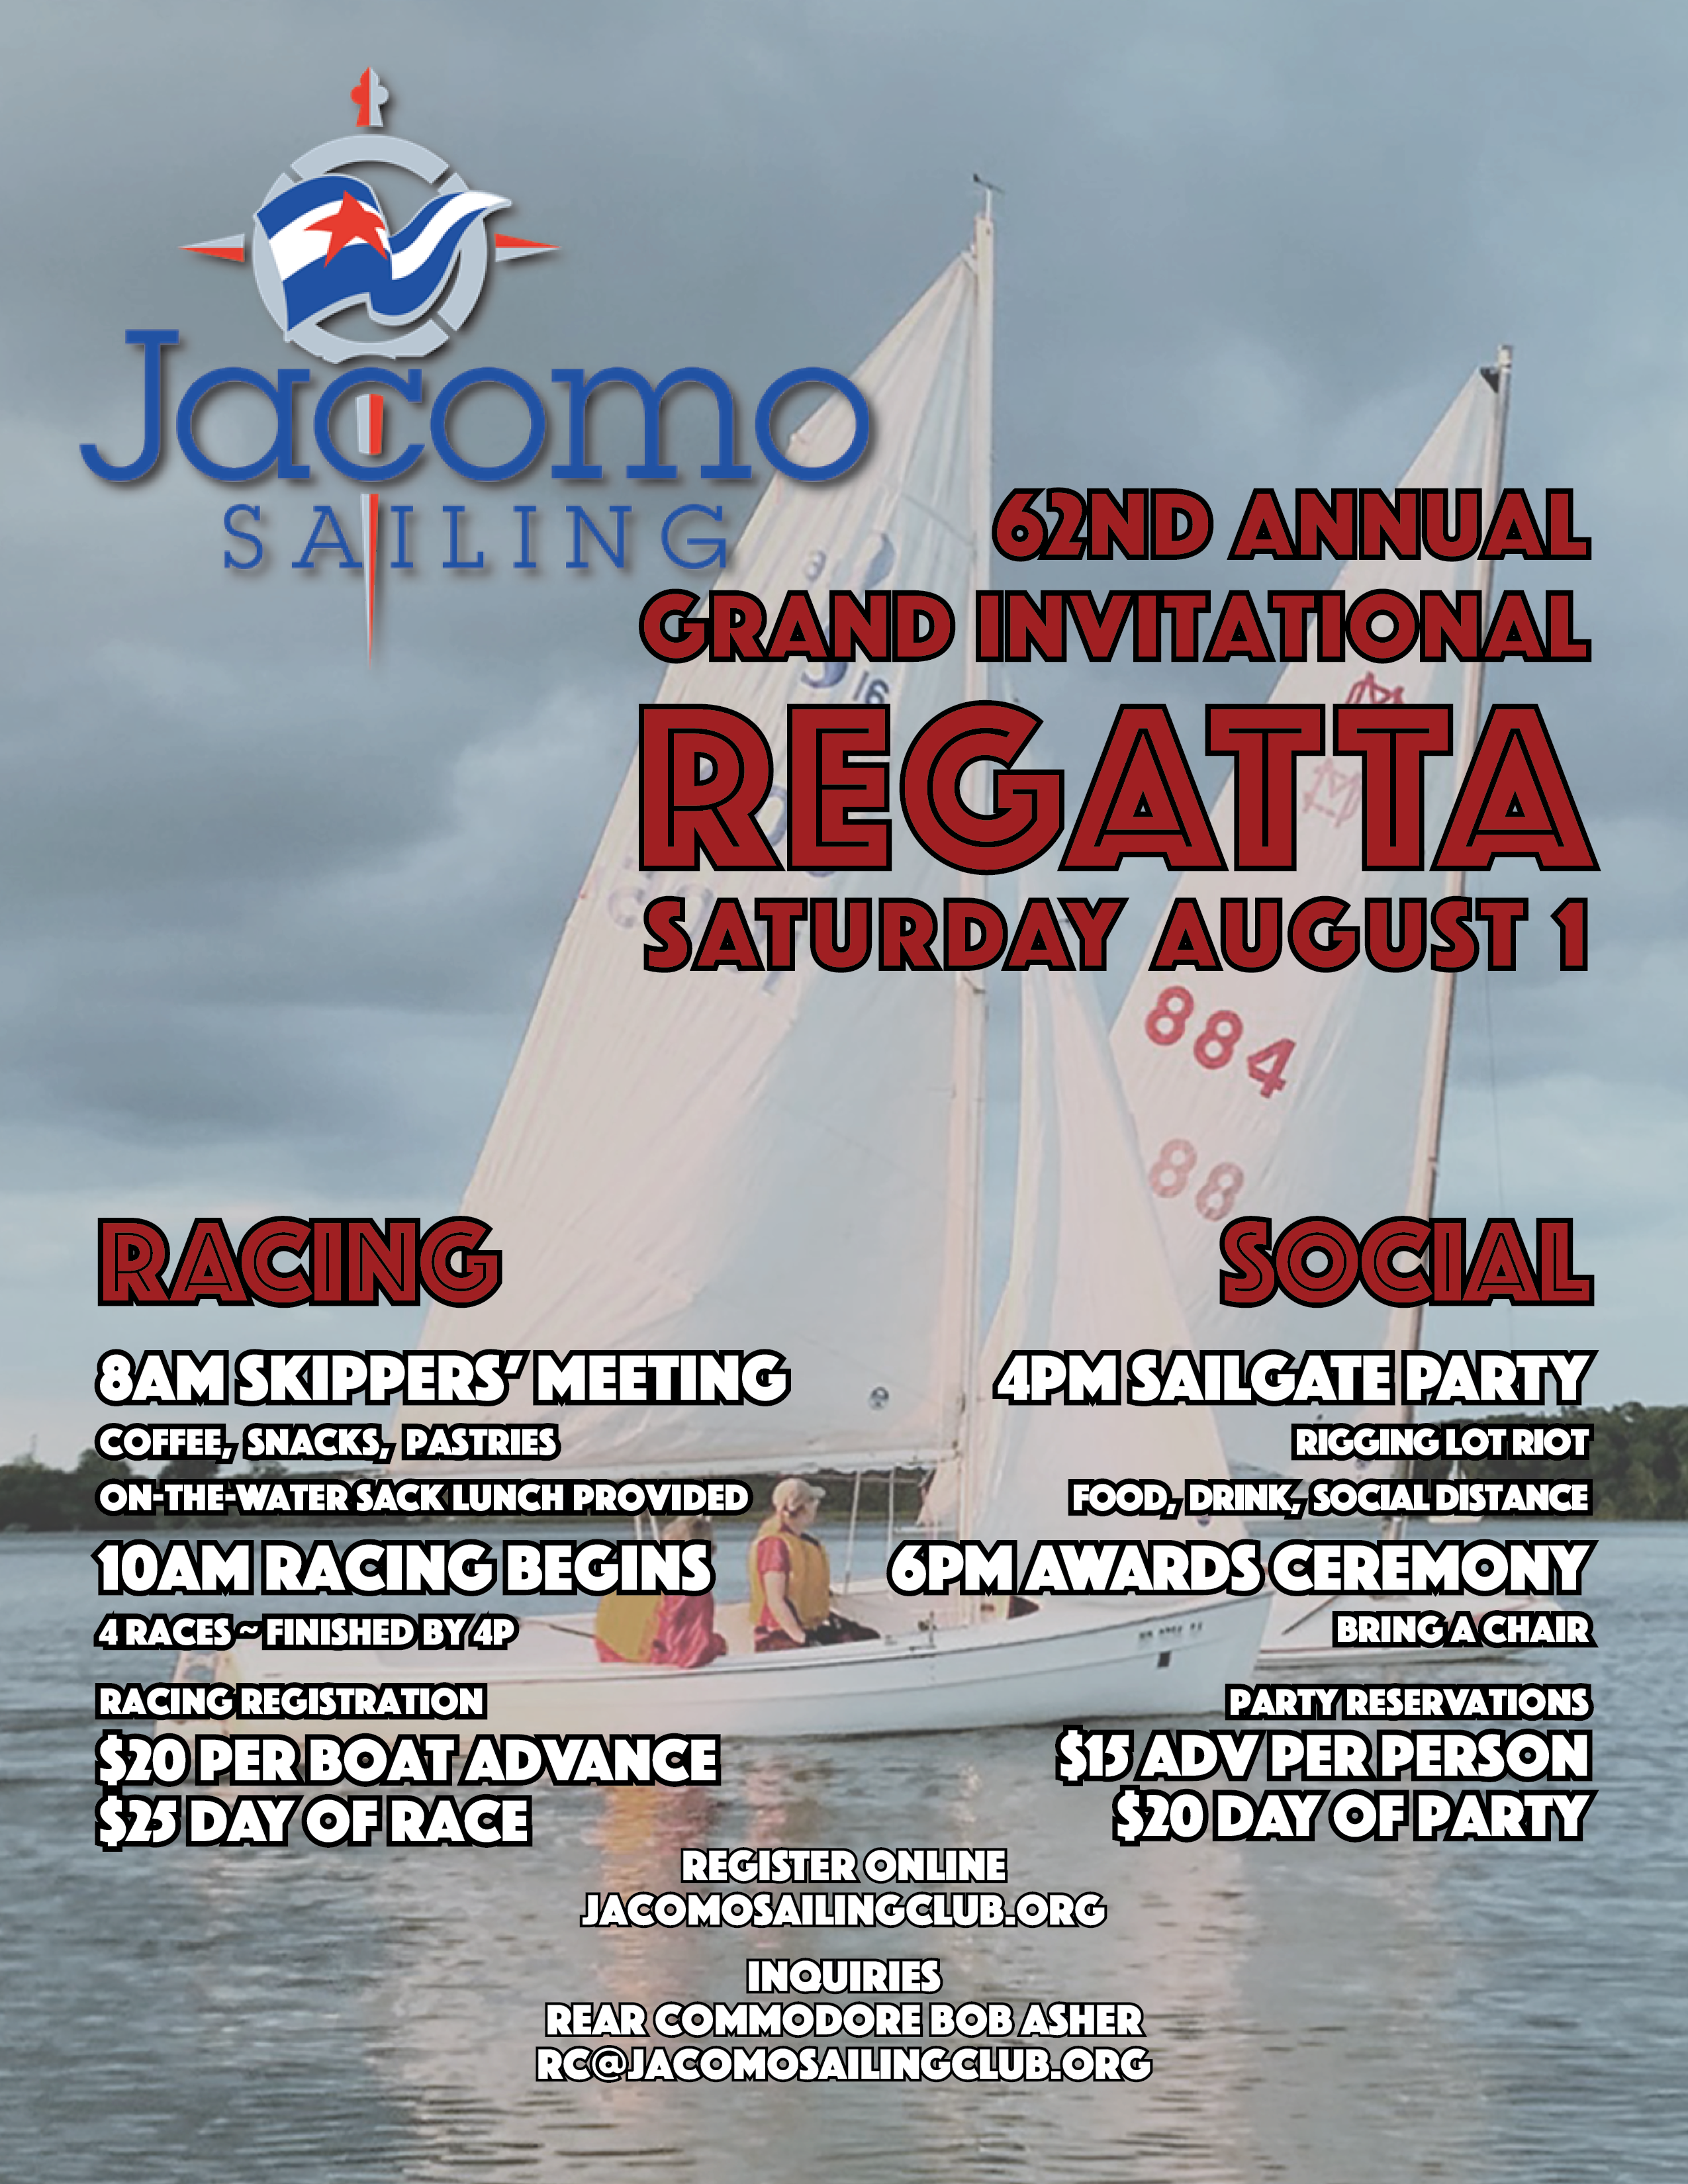 2020 Invitational Regatta Flyer